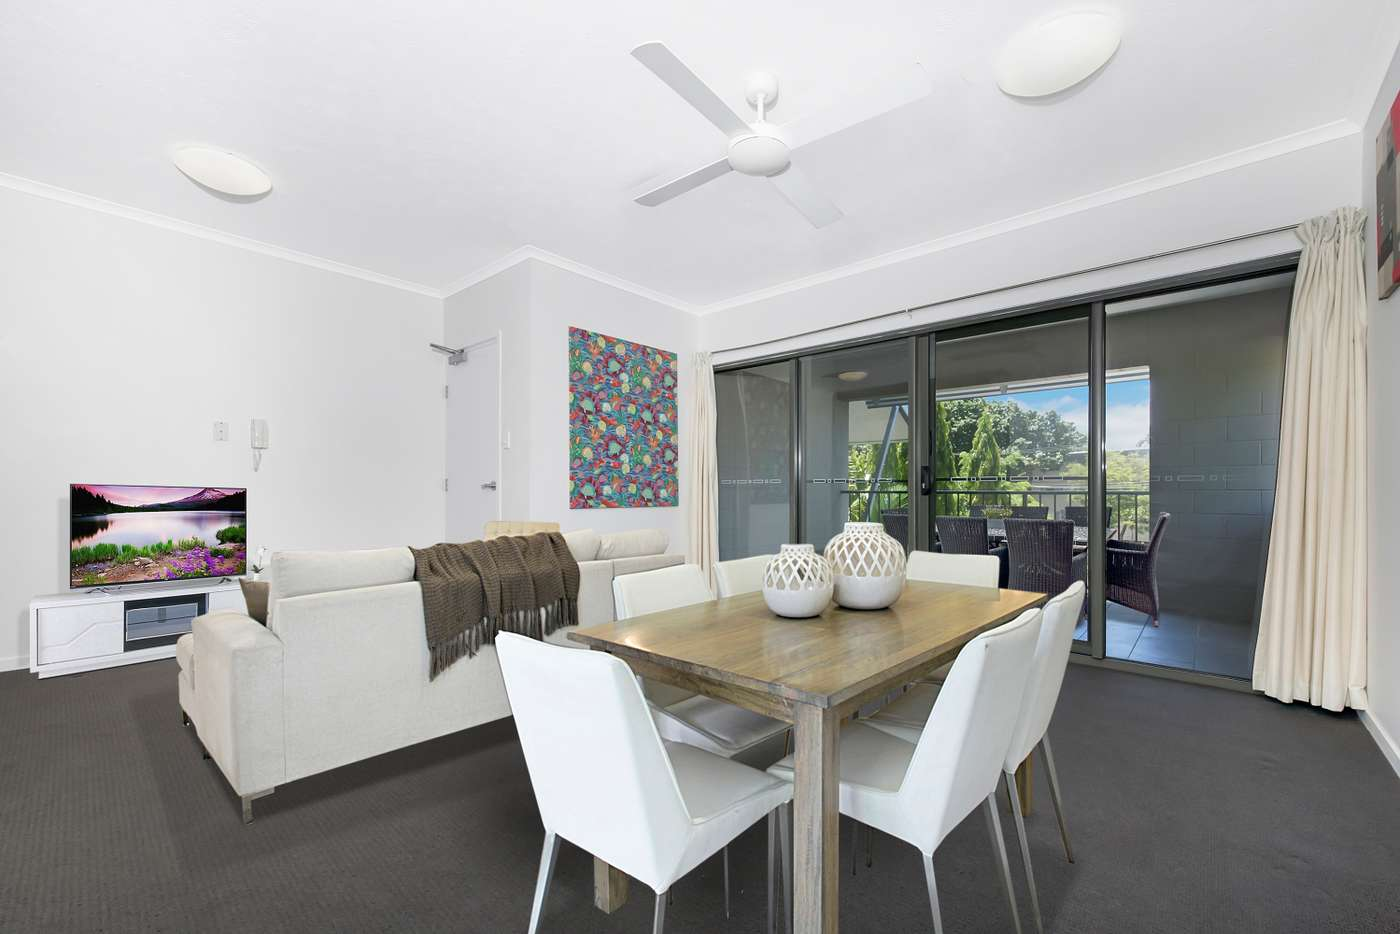 Main view of Homely apartment listing, 8/11 Carter Street, North Ward QLD 4810